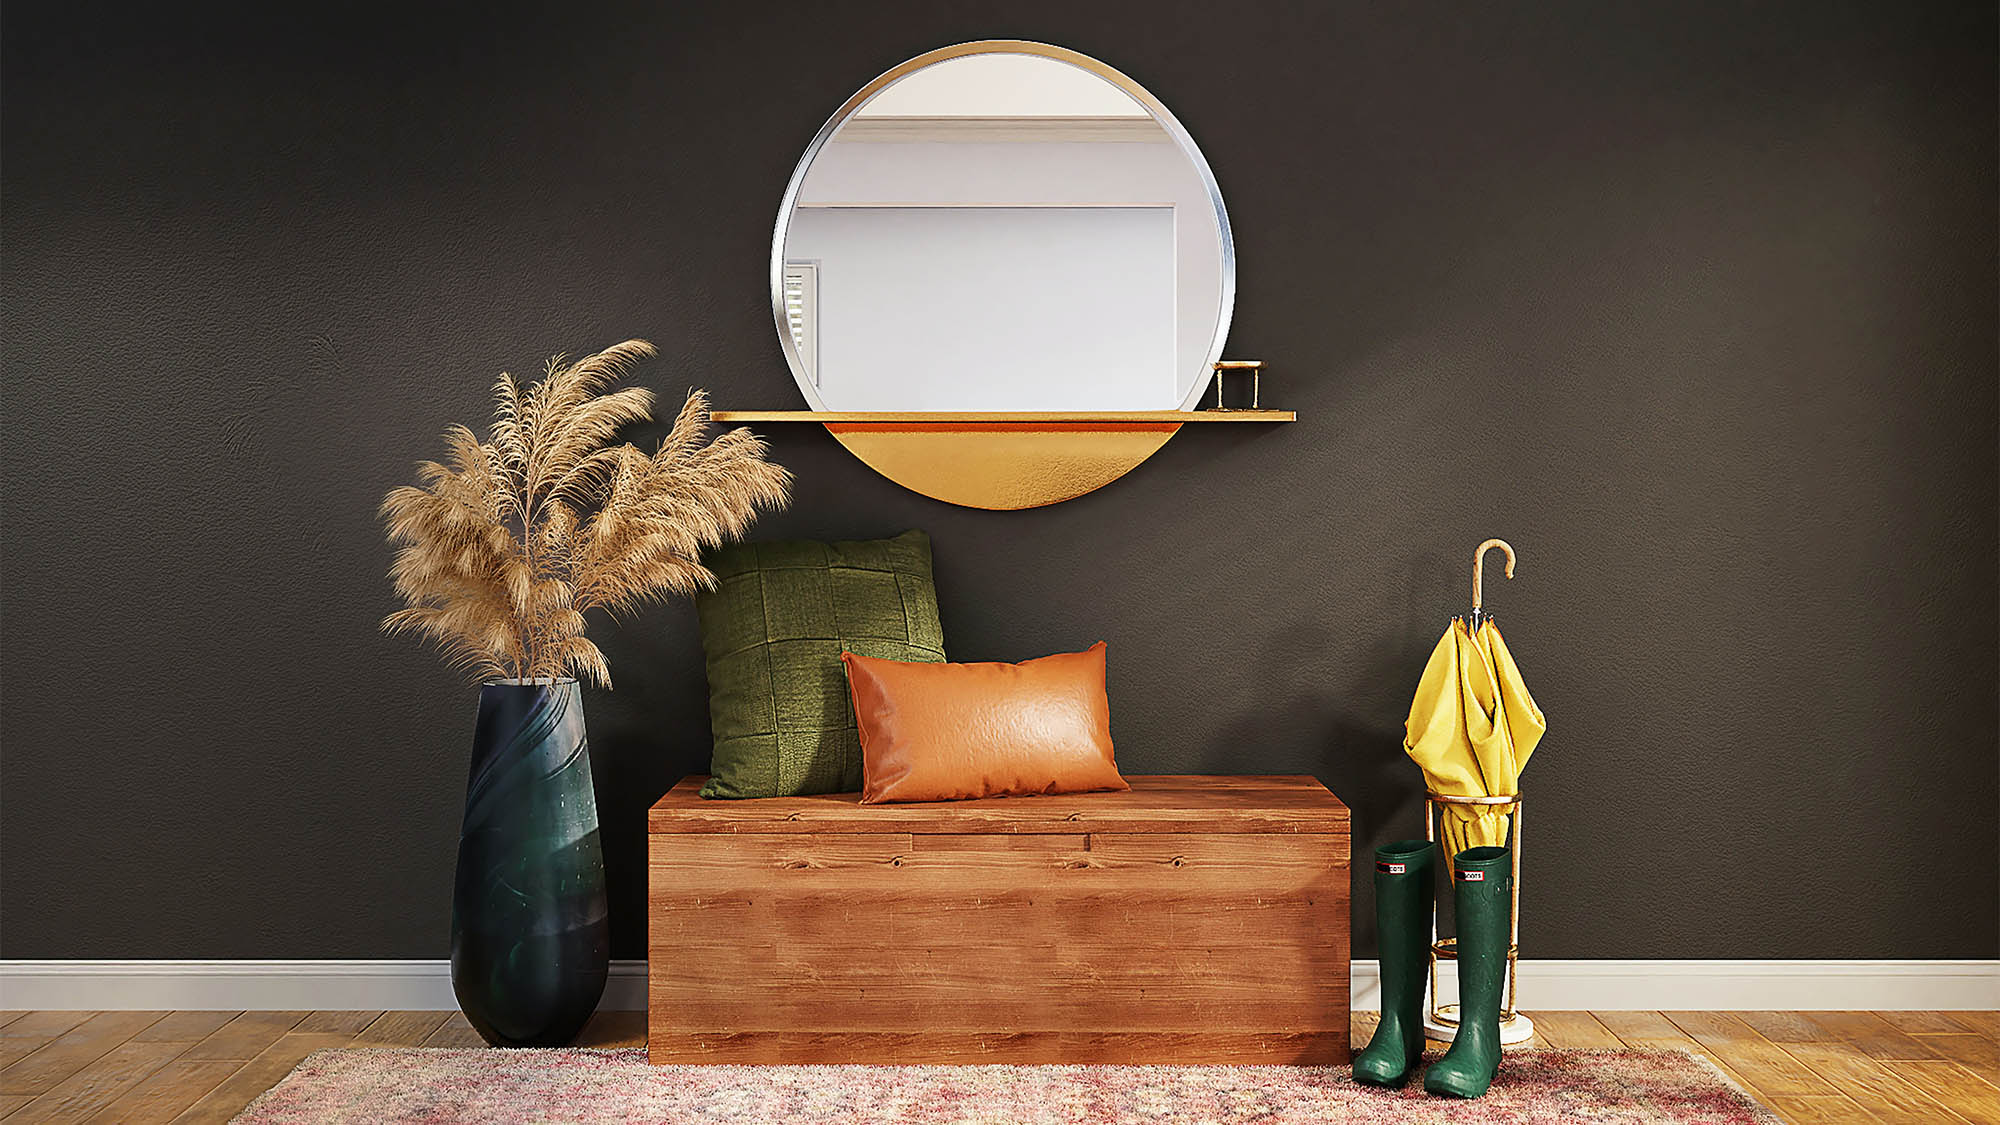 Foyer with dark gray wall and large center round mirror above a wooden chese with orange and green pillow flanked by green hunter boots with yellow umbrella and green planter